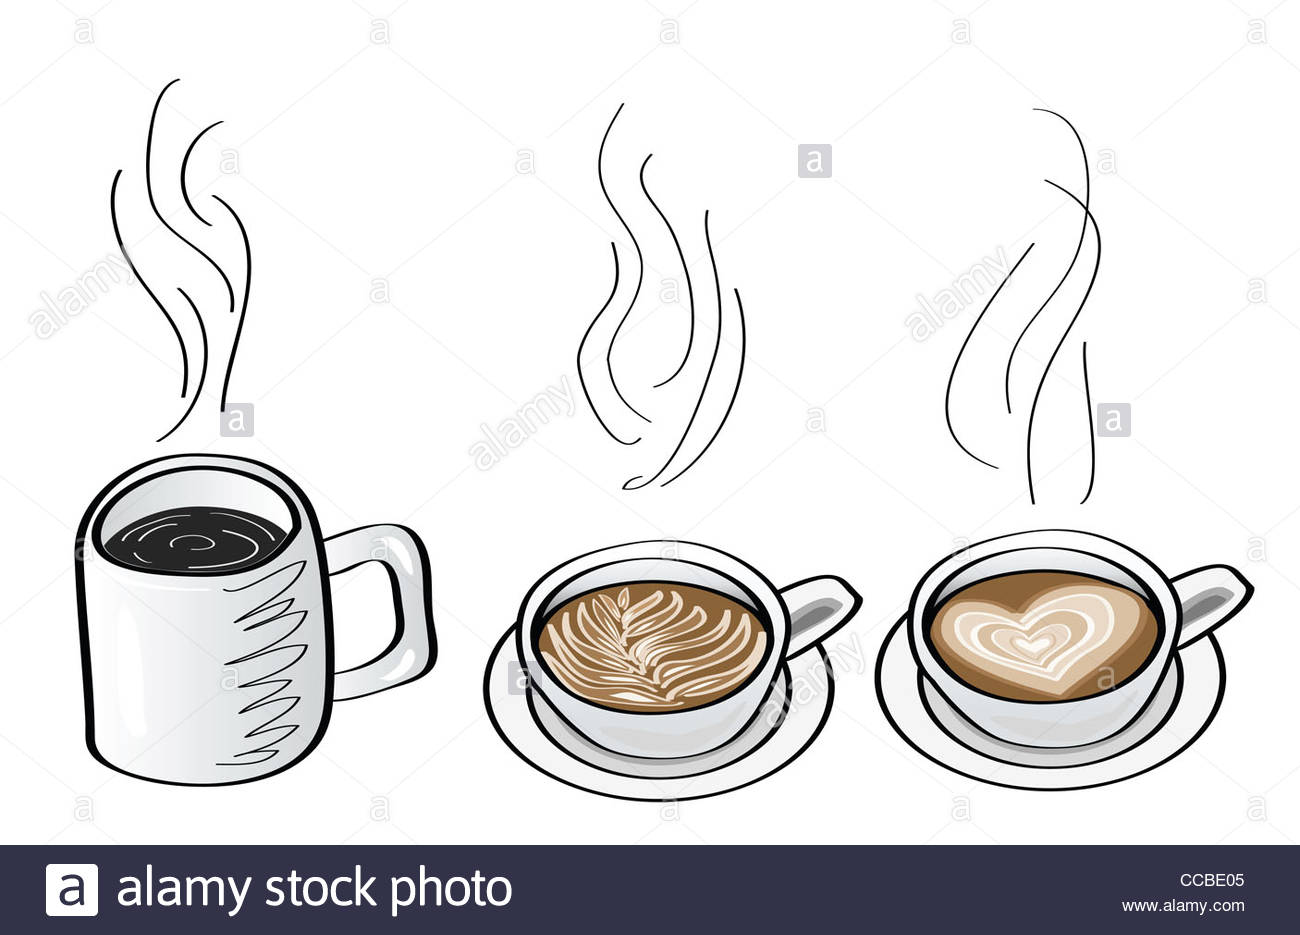 1300x935 Doodle Illustrations Of Coffee Drink, Black Coffee, Cappuccino